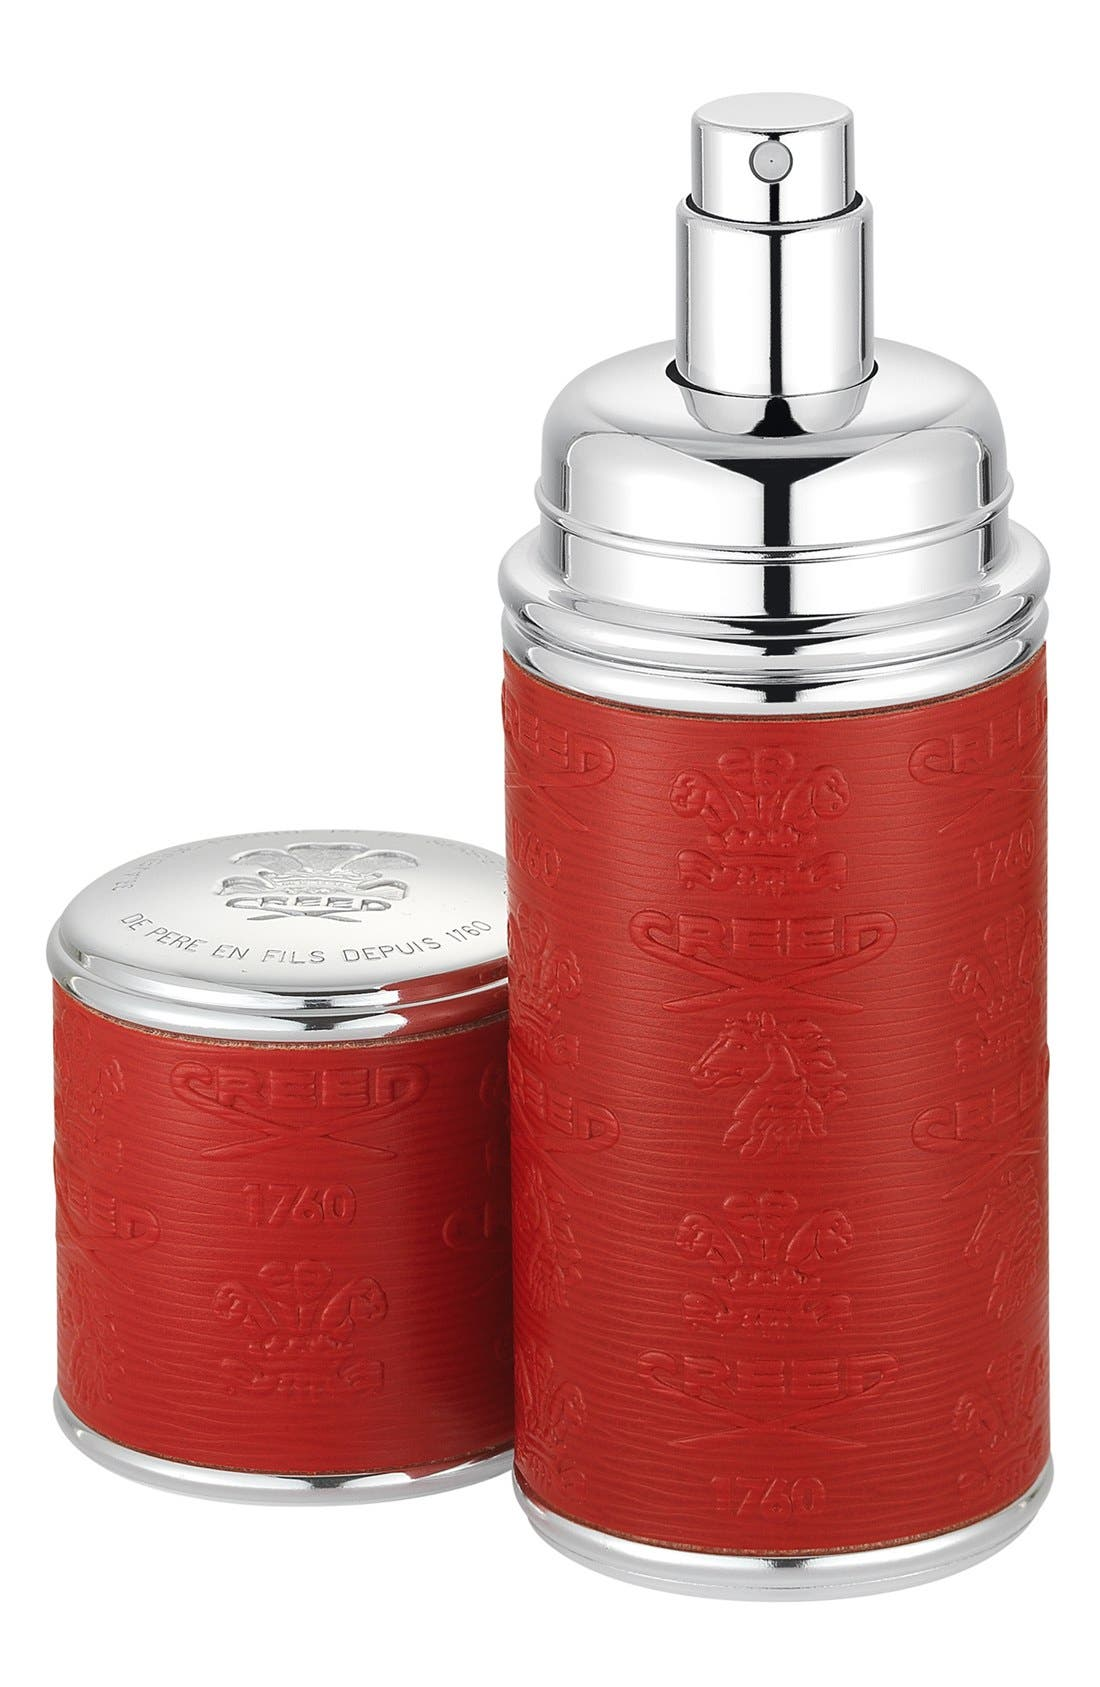 Red with Silver Trim Leather Atomizer,                             Main thumbnail 1, color,                             NO COLOR